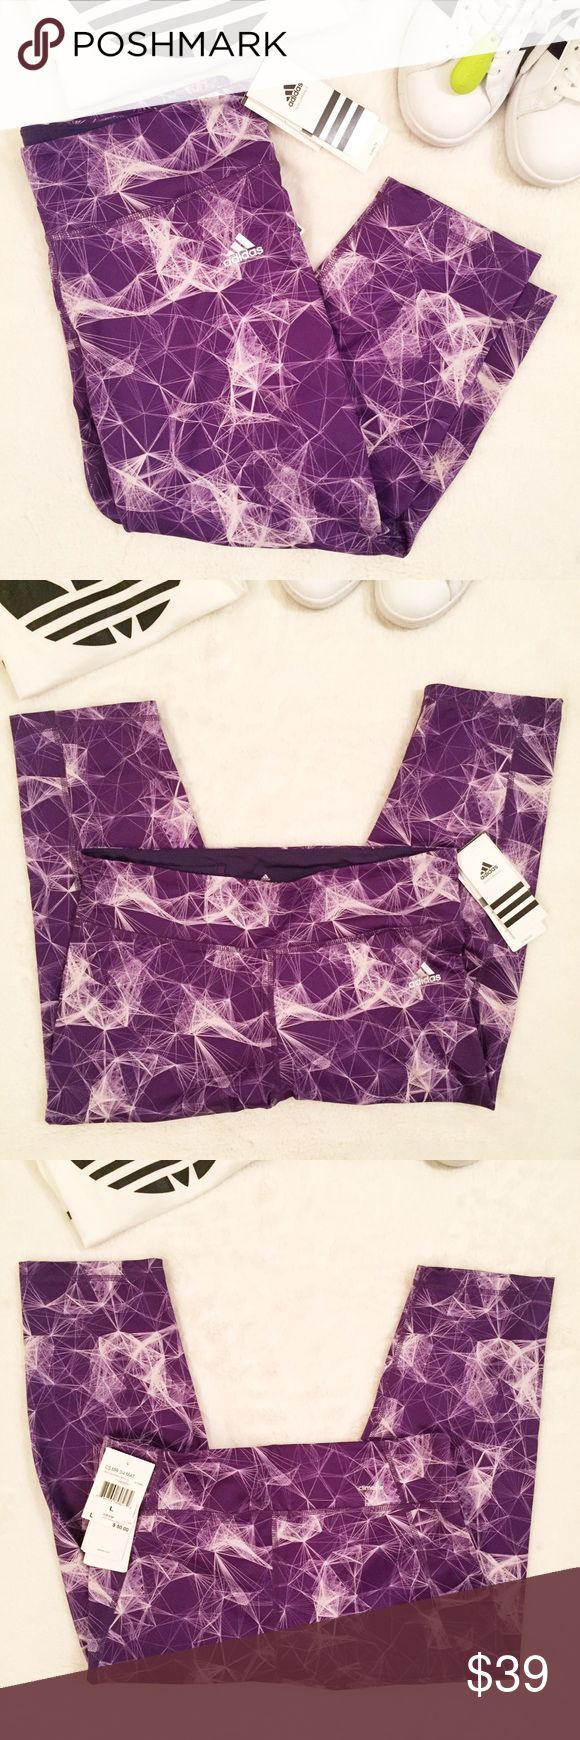 JUST IN ADIDAS Climalite Capri Leggings in Purple Spice up your athleisure with these purple graphic Adidas Performance Climalite Capri leggings / tights, interior pocket, adidas logo on front right hip, keeps you cool on a hot day or while working out at the gym, has UPF 50 protection from UV rays Approx Measurements: 9.5 inch rise, 18 inch inseam, interested? Make an offer! Adidas Pants Leggings